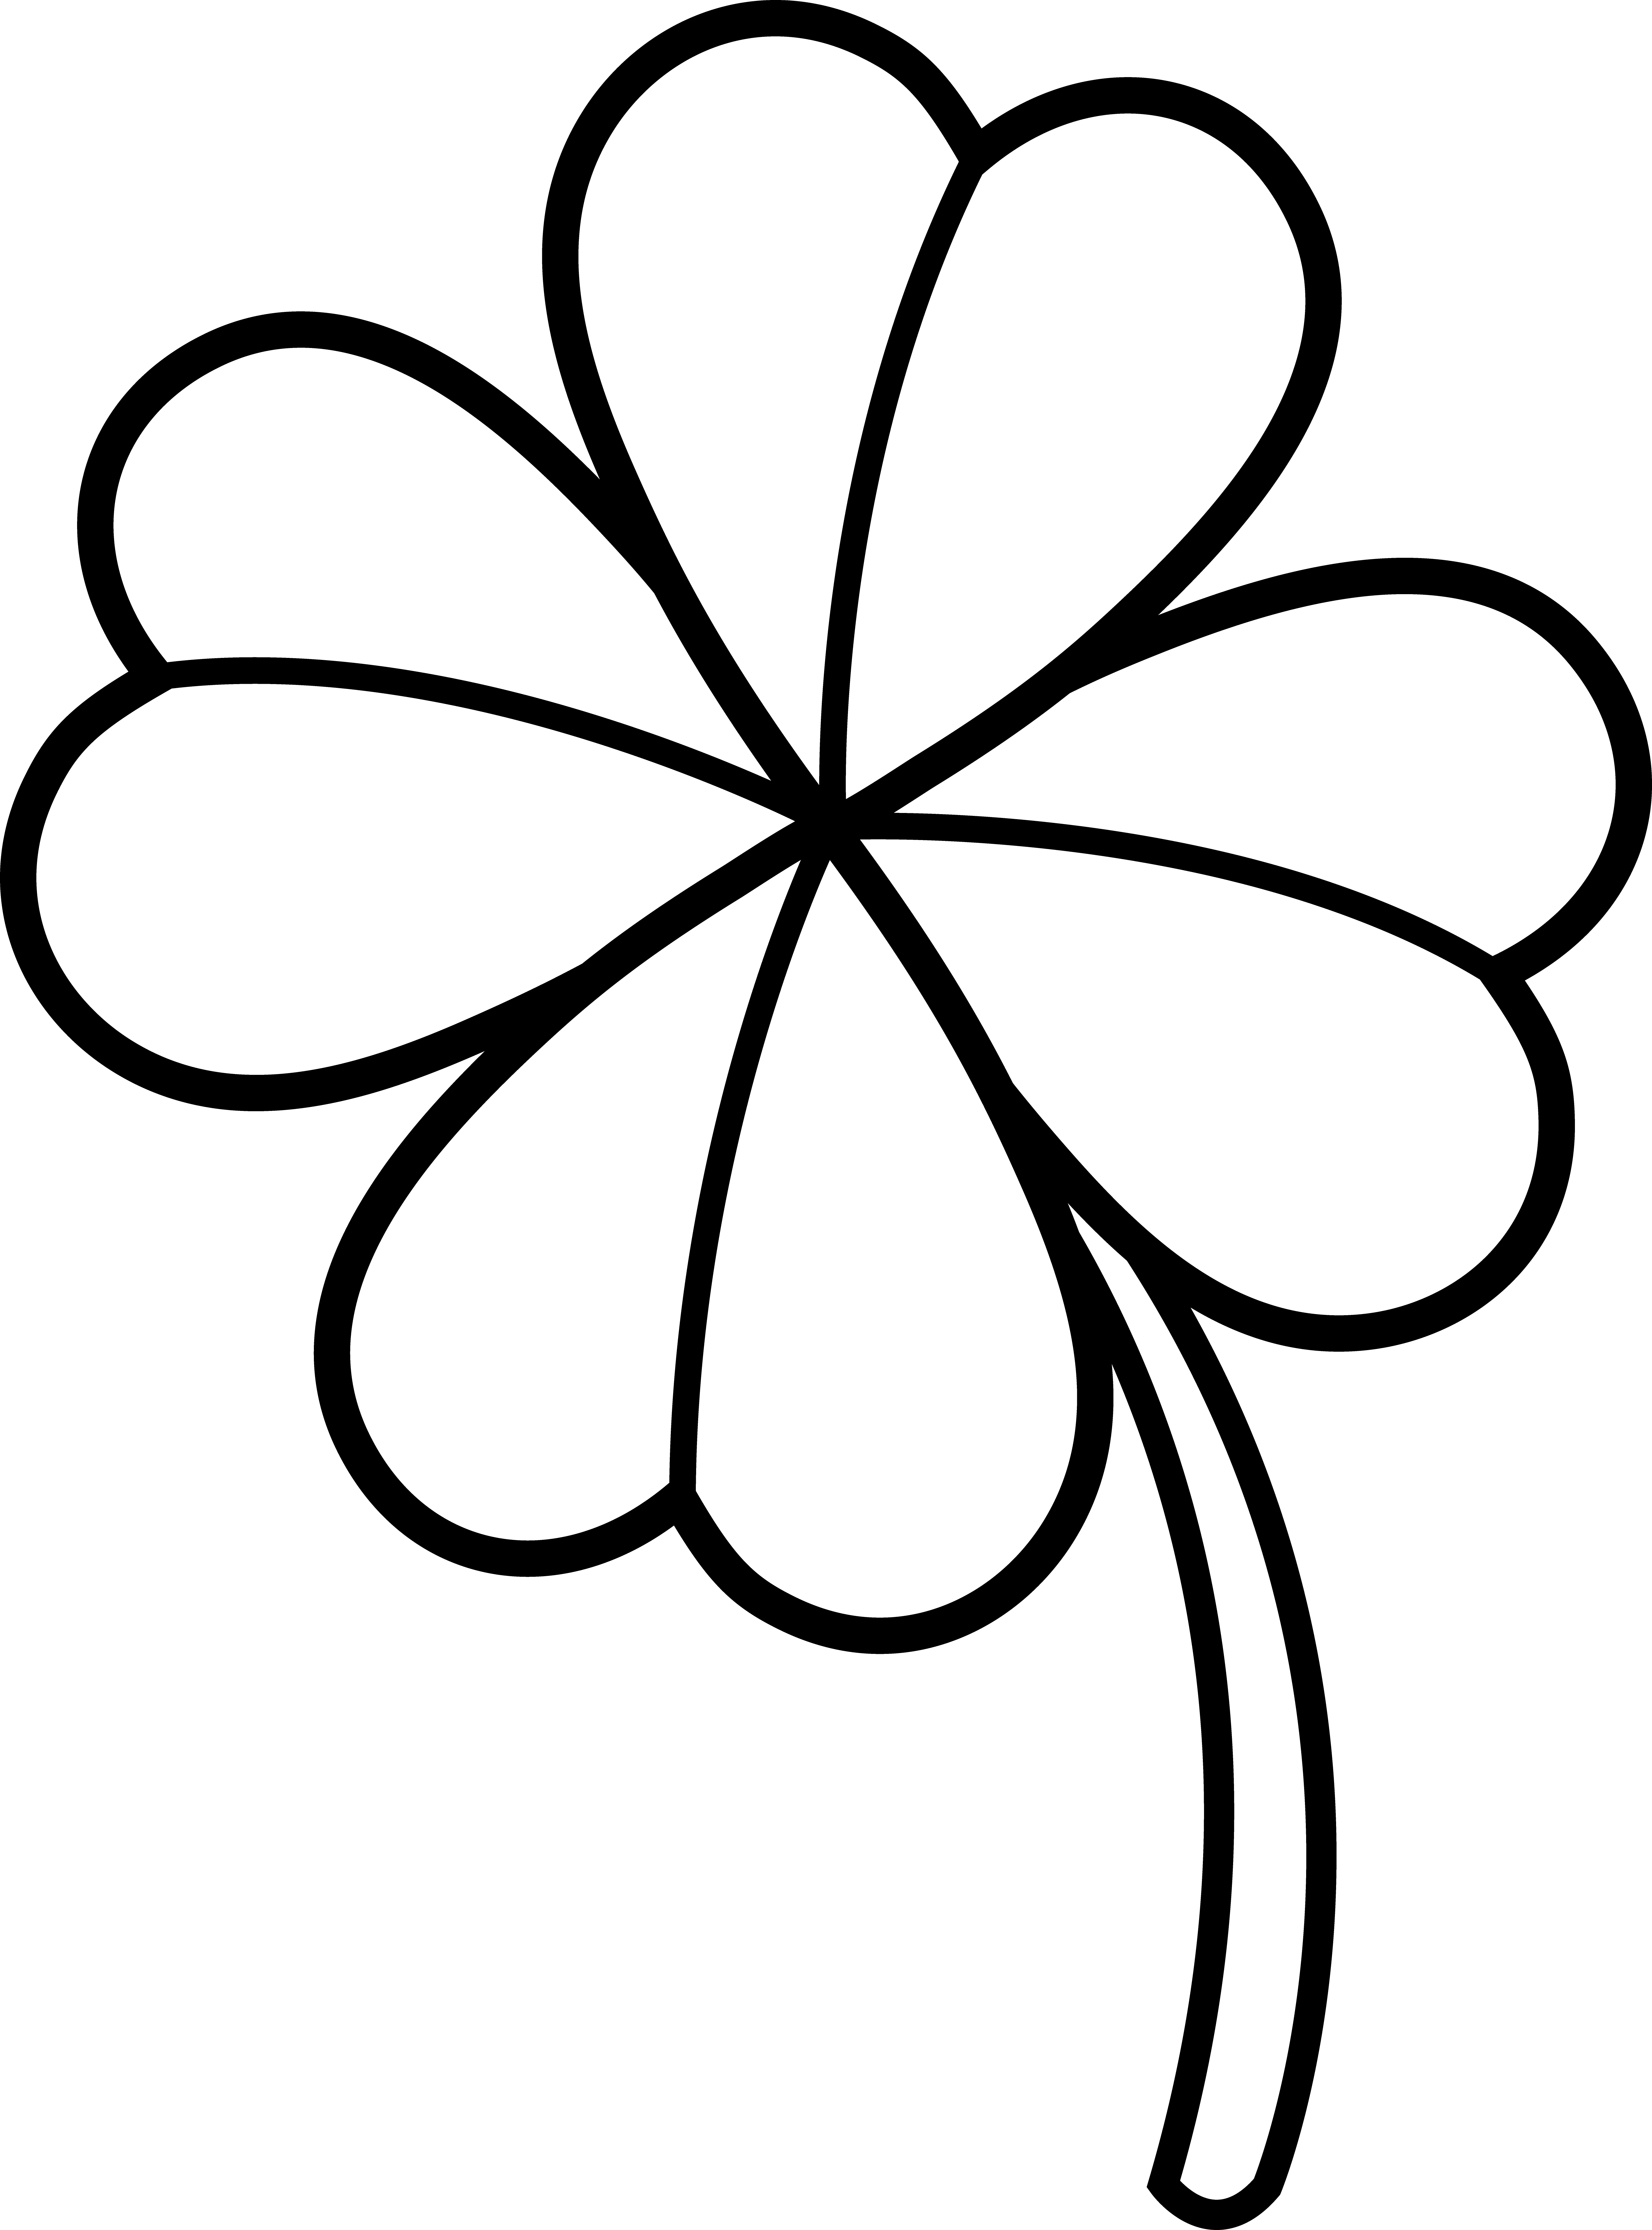 Crown clover clipart black and white graphic royalty free 28+ Collection of 4 Leaf Clover Clipart Black And White | High ... graphic royalty free